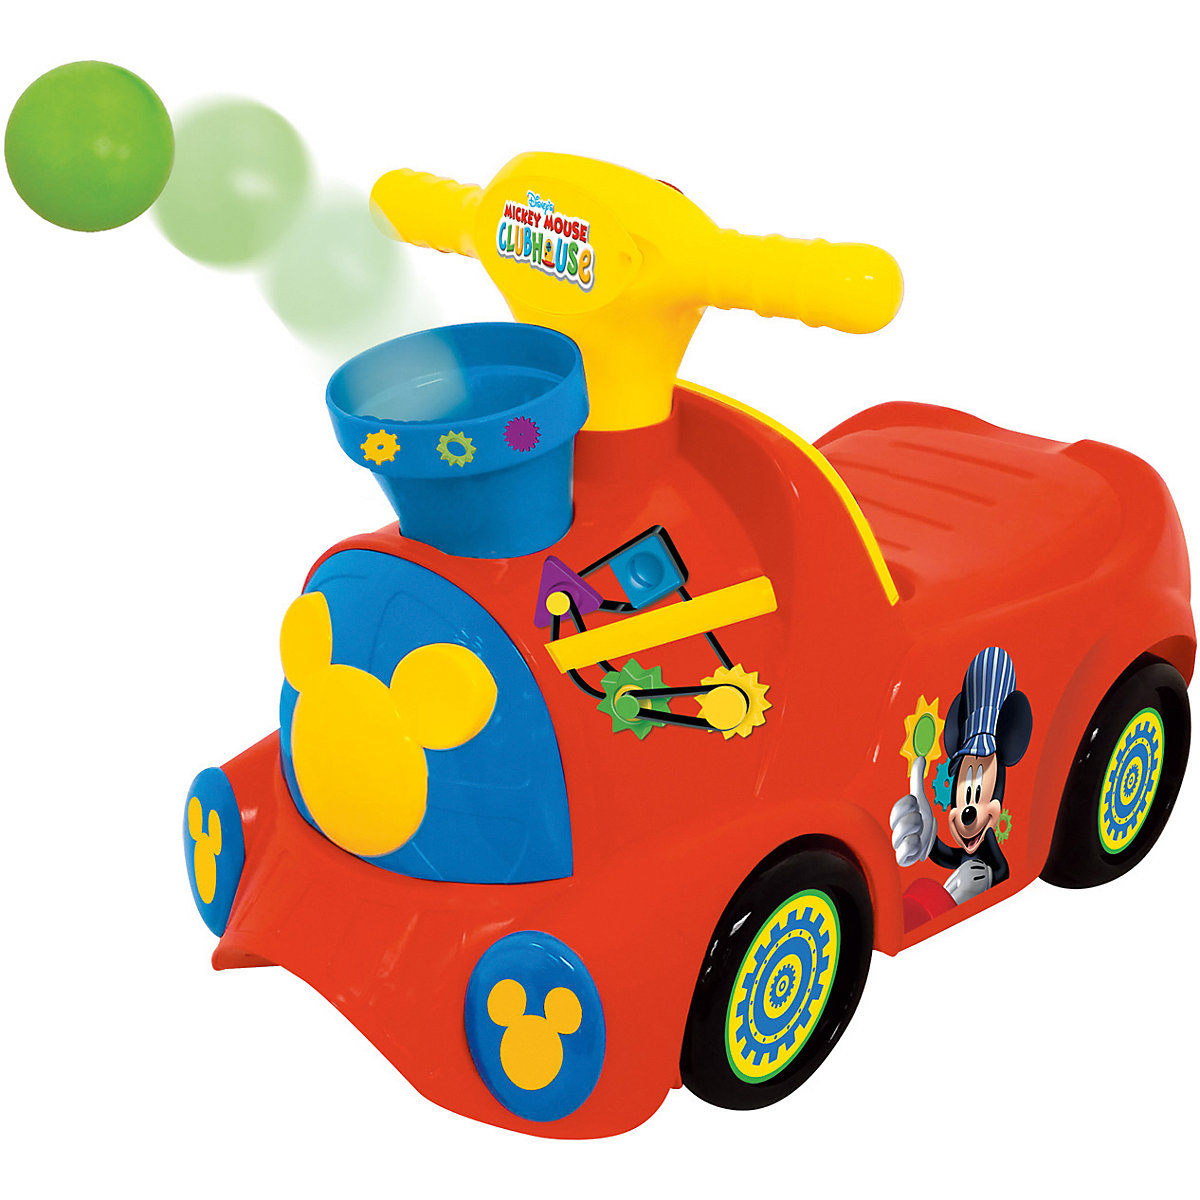 KIDDIELAND Ride On Cars 9508138 Children electric car Outdoor Fun Sports Ride On Toys walker toy game Kids peppa s car ride